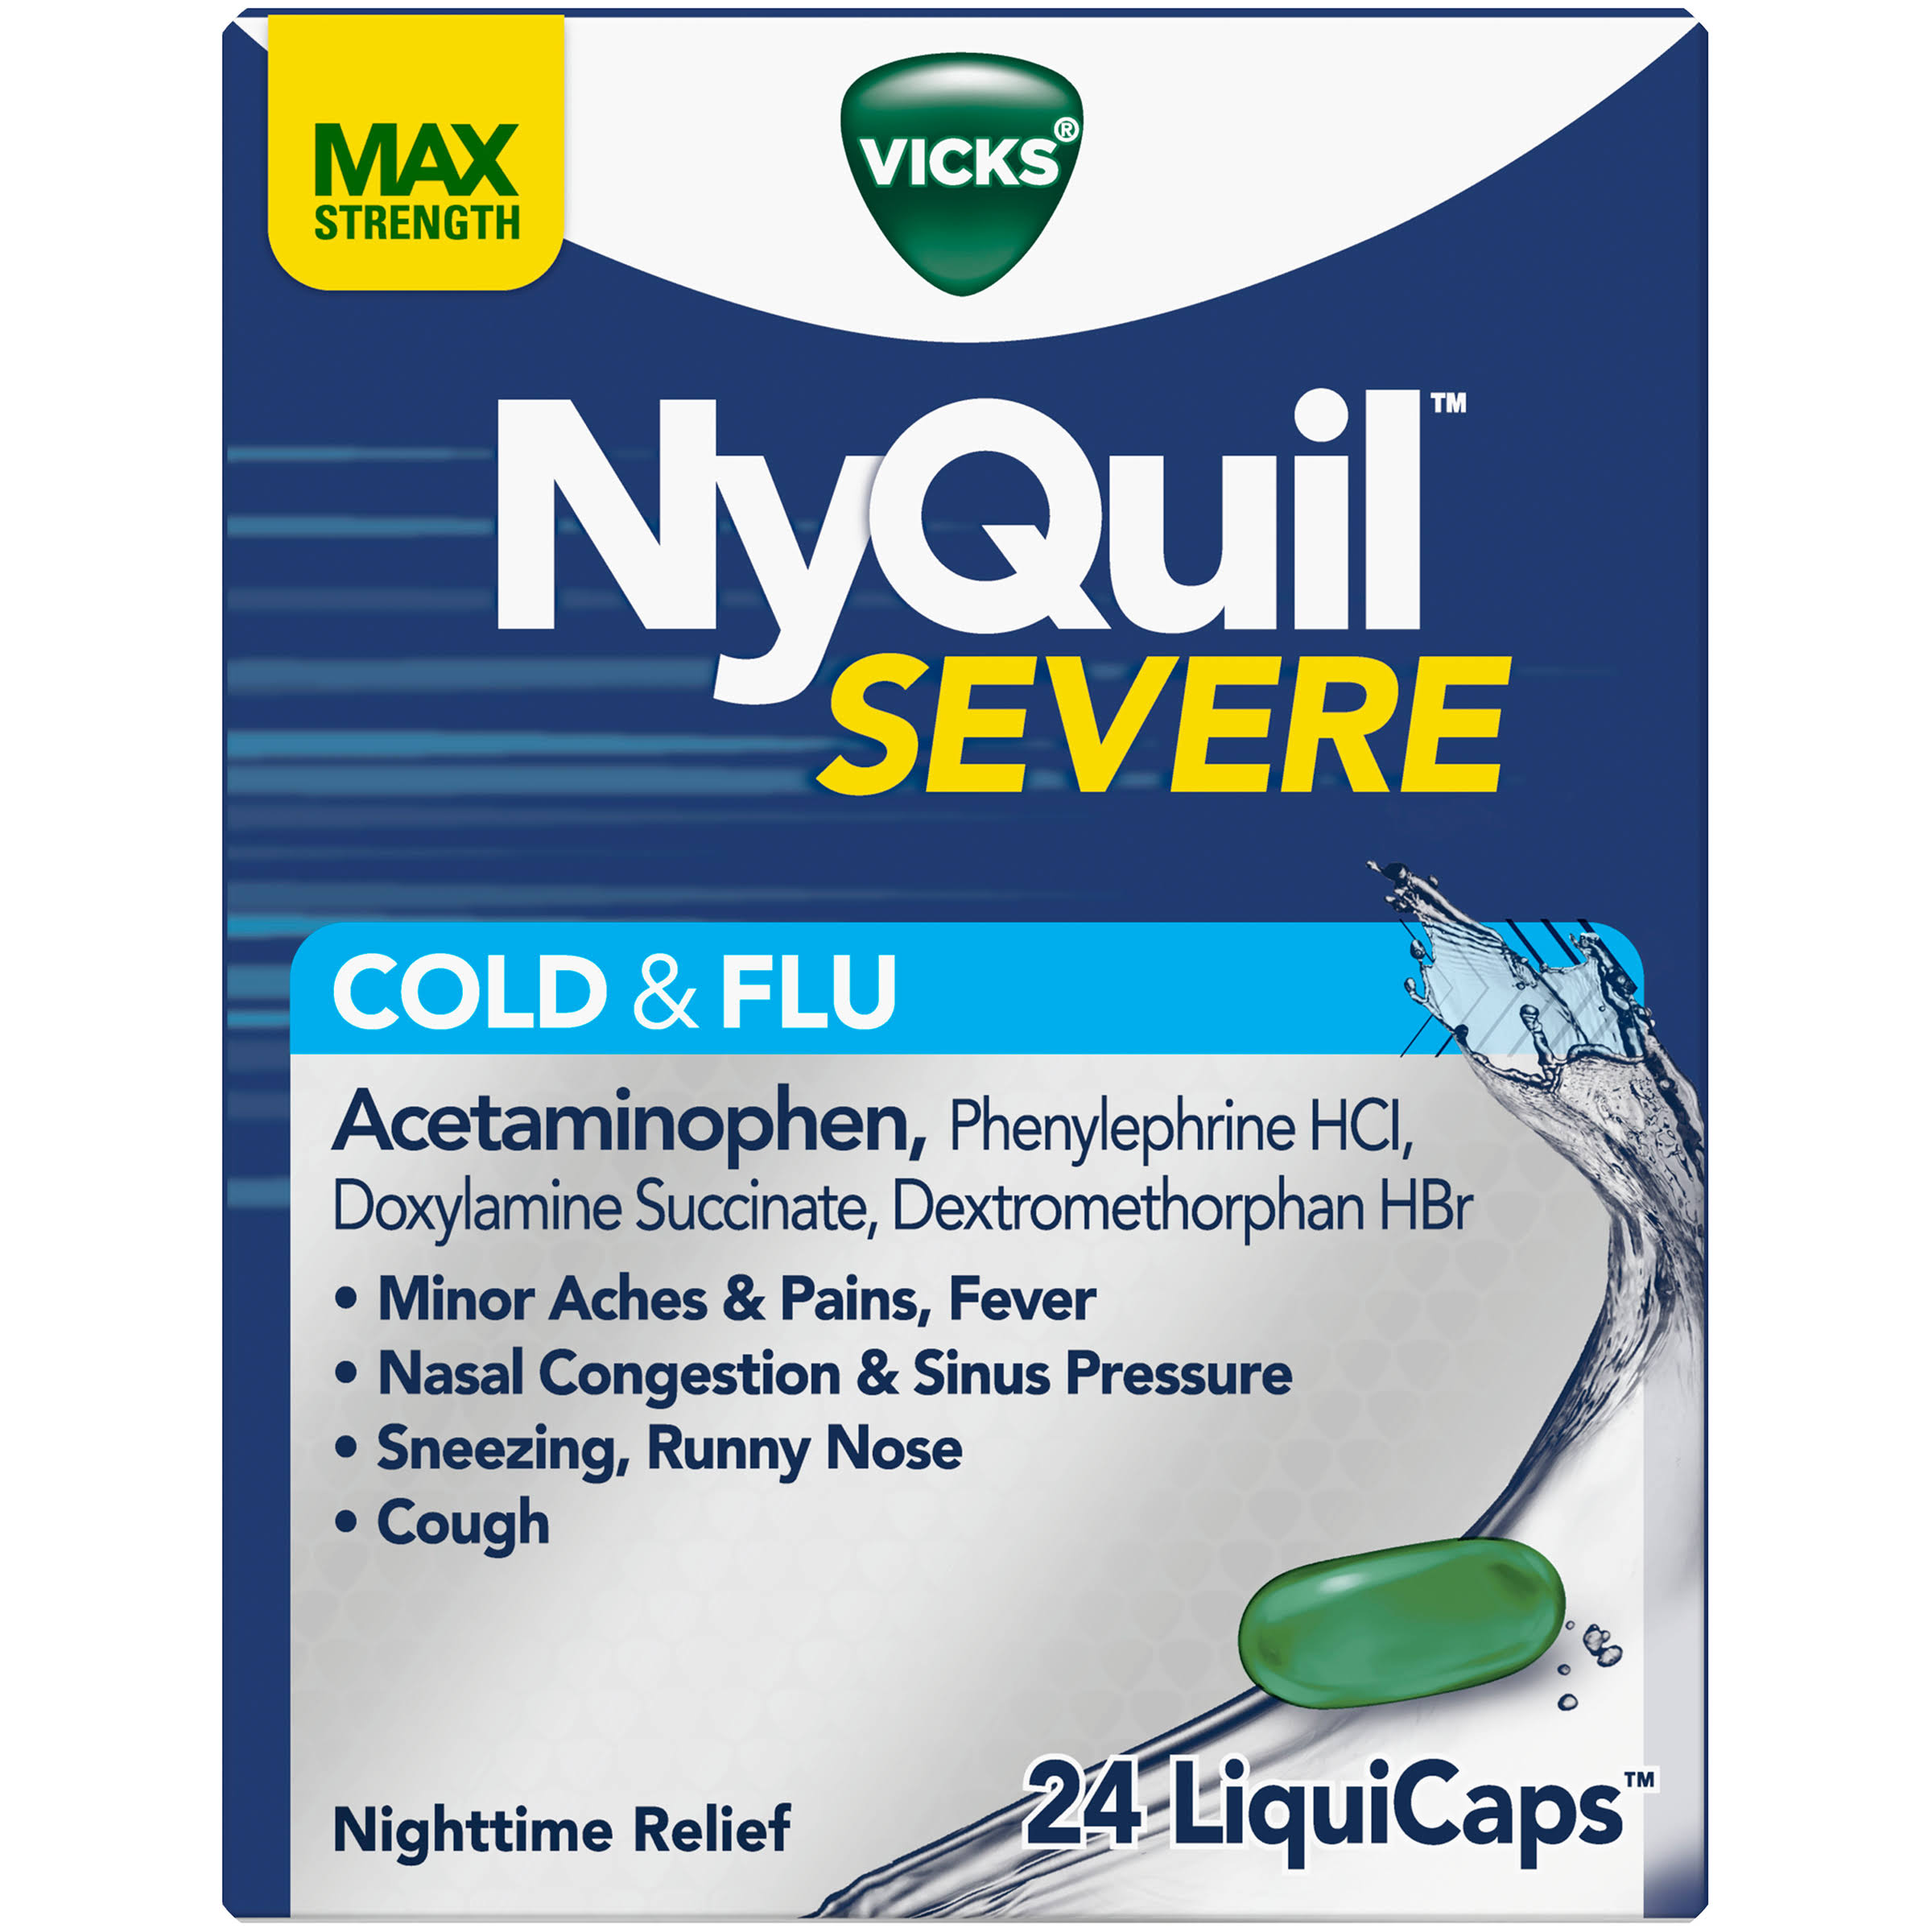 Nyquil Cold & Flu, Severe, Non-Drowsy, Max Strength, LiquiCaps - 24 liquicaps